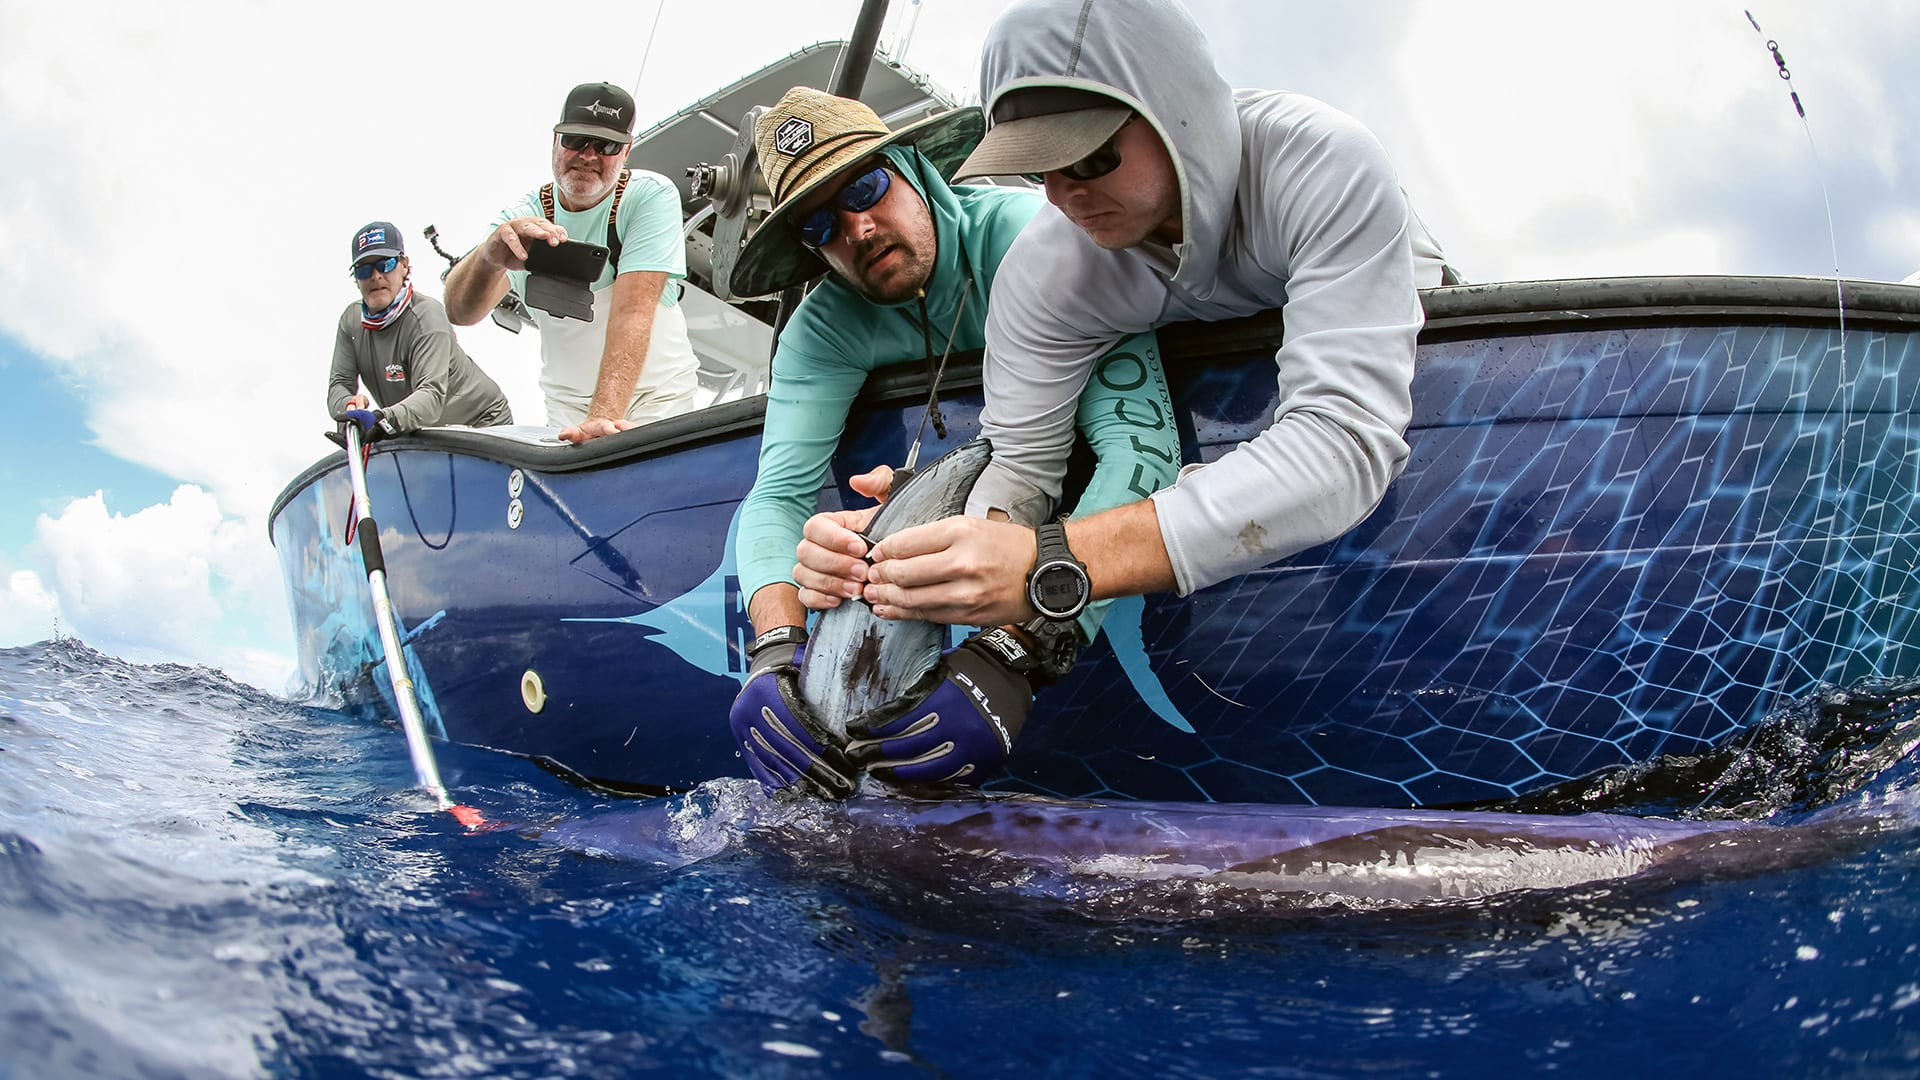 University of Washington ceanographers Peter Gaube (wearing purple gloves) and Camrin Braun (far right) attach a satellite tag on a swordfish in August 2019 off the coast of Florida. (Photo by Steve Dougherty Photography)